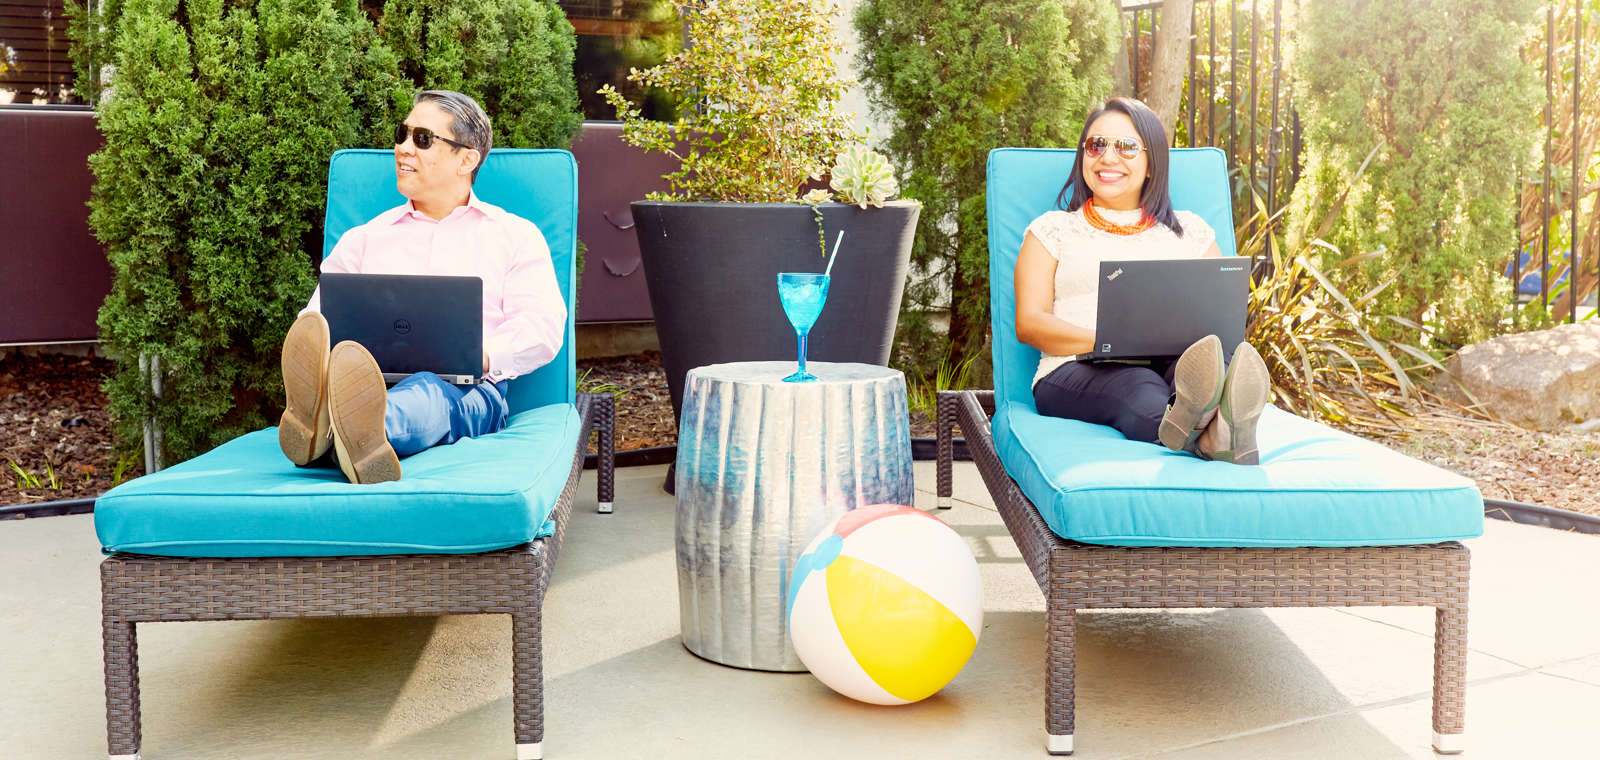 Couple Working on Laptops Pool Side